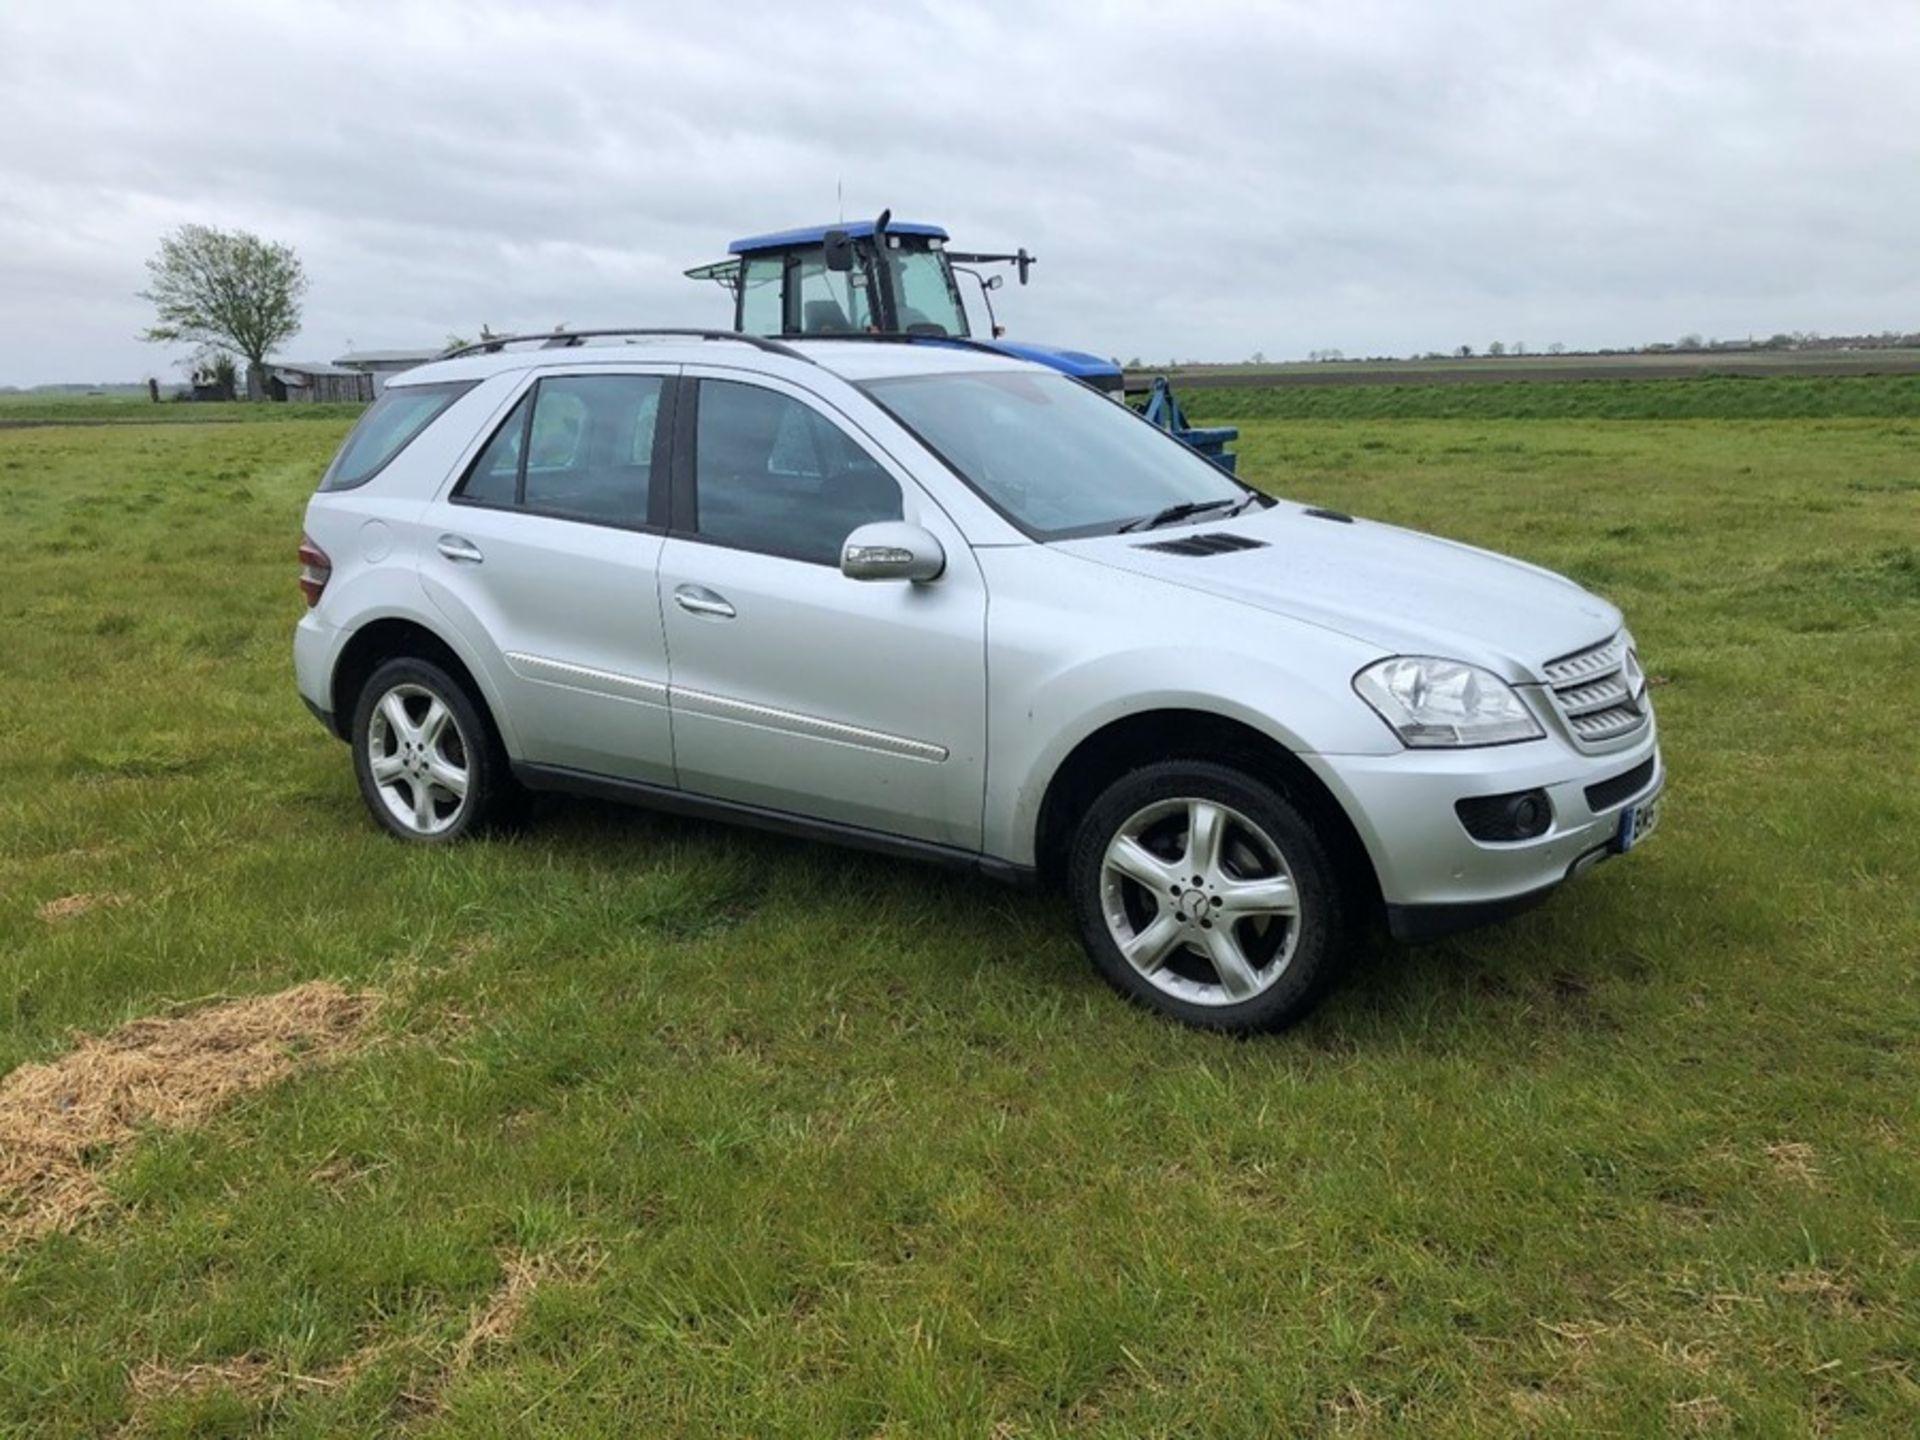 (07) Mercedes ML 320 CDI, diesel, 4 Matic car, 129,530 miles, one owner, tow bar. full service - Image 3 of 14